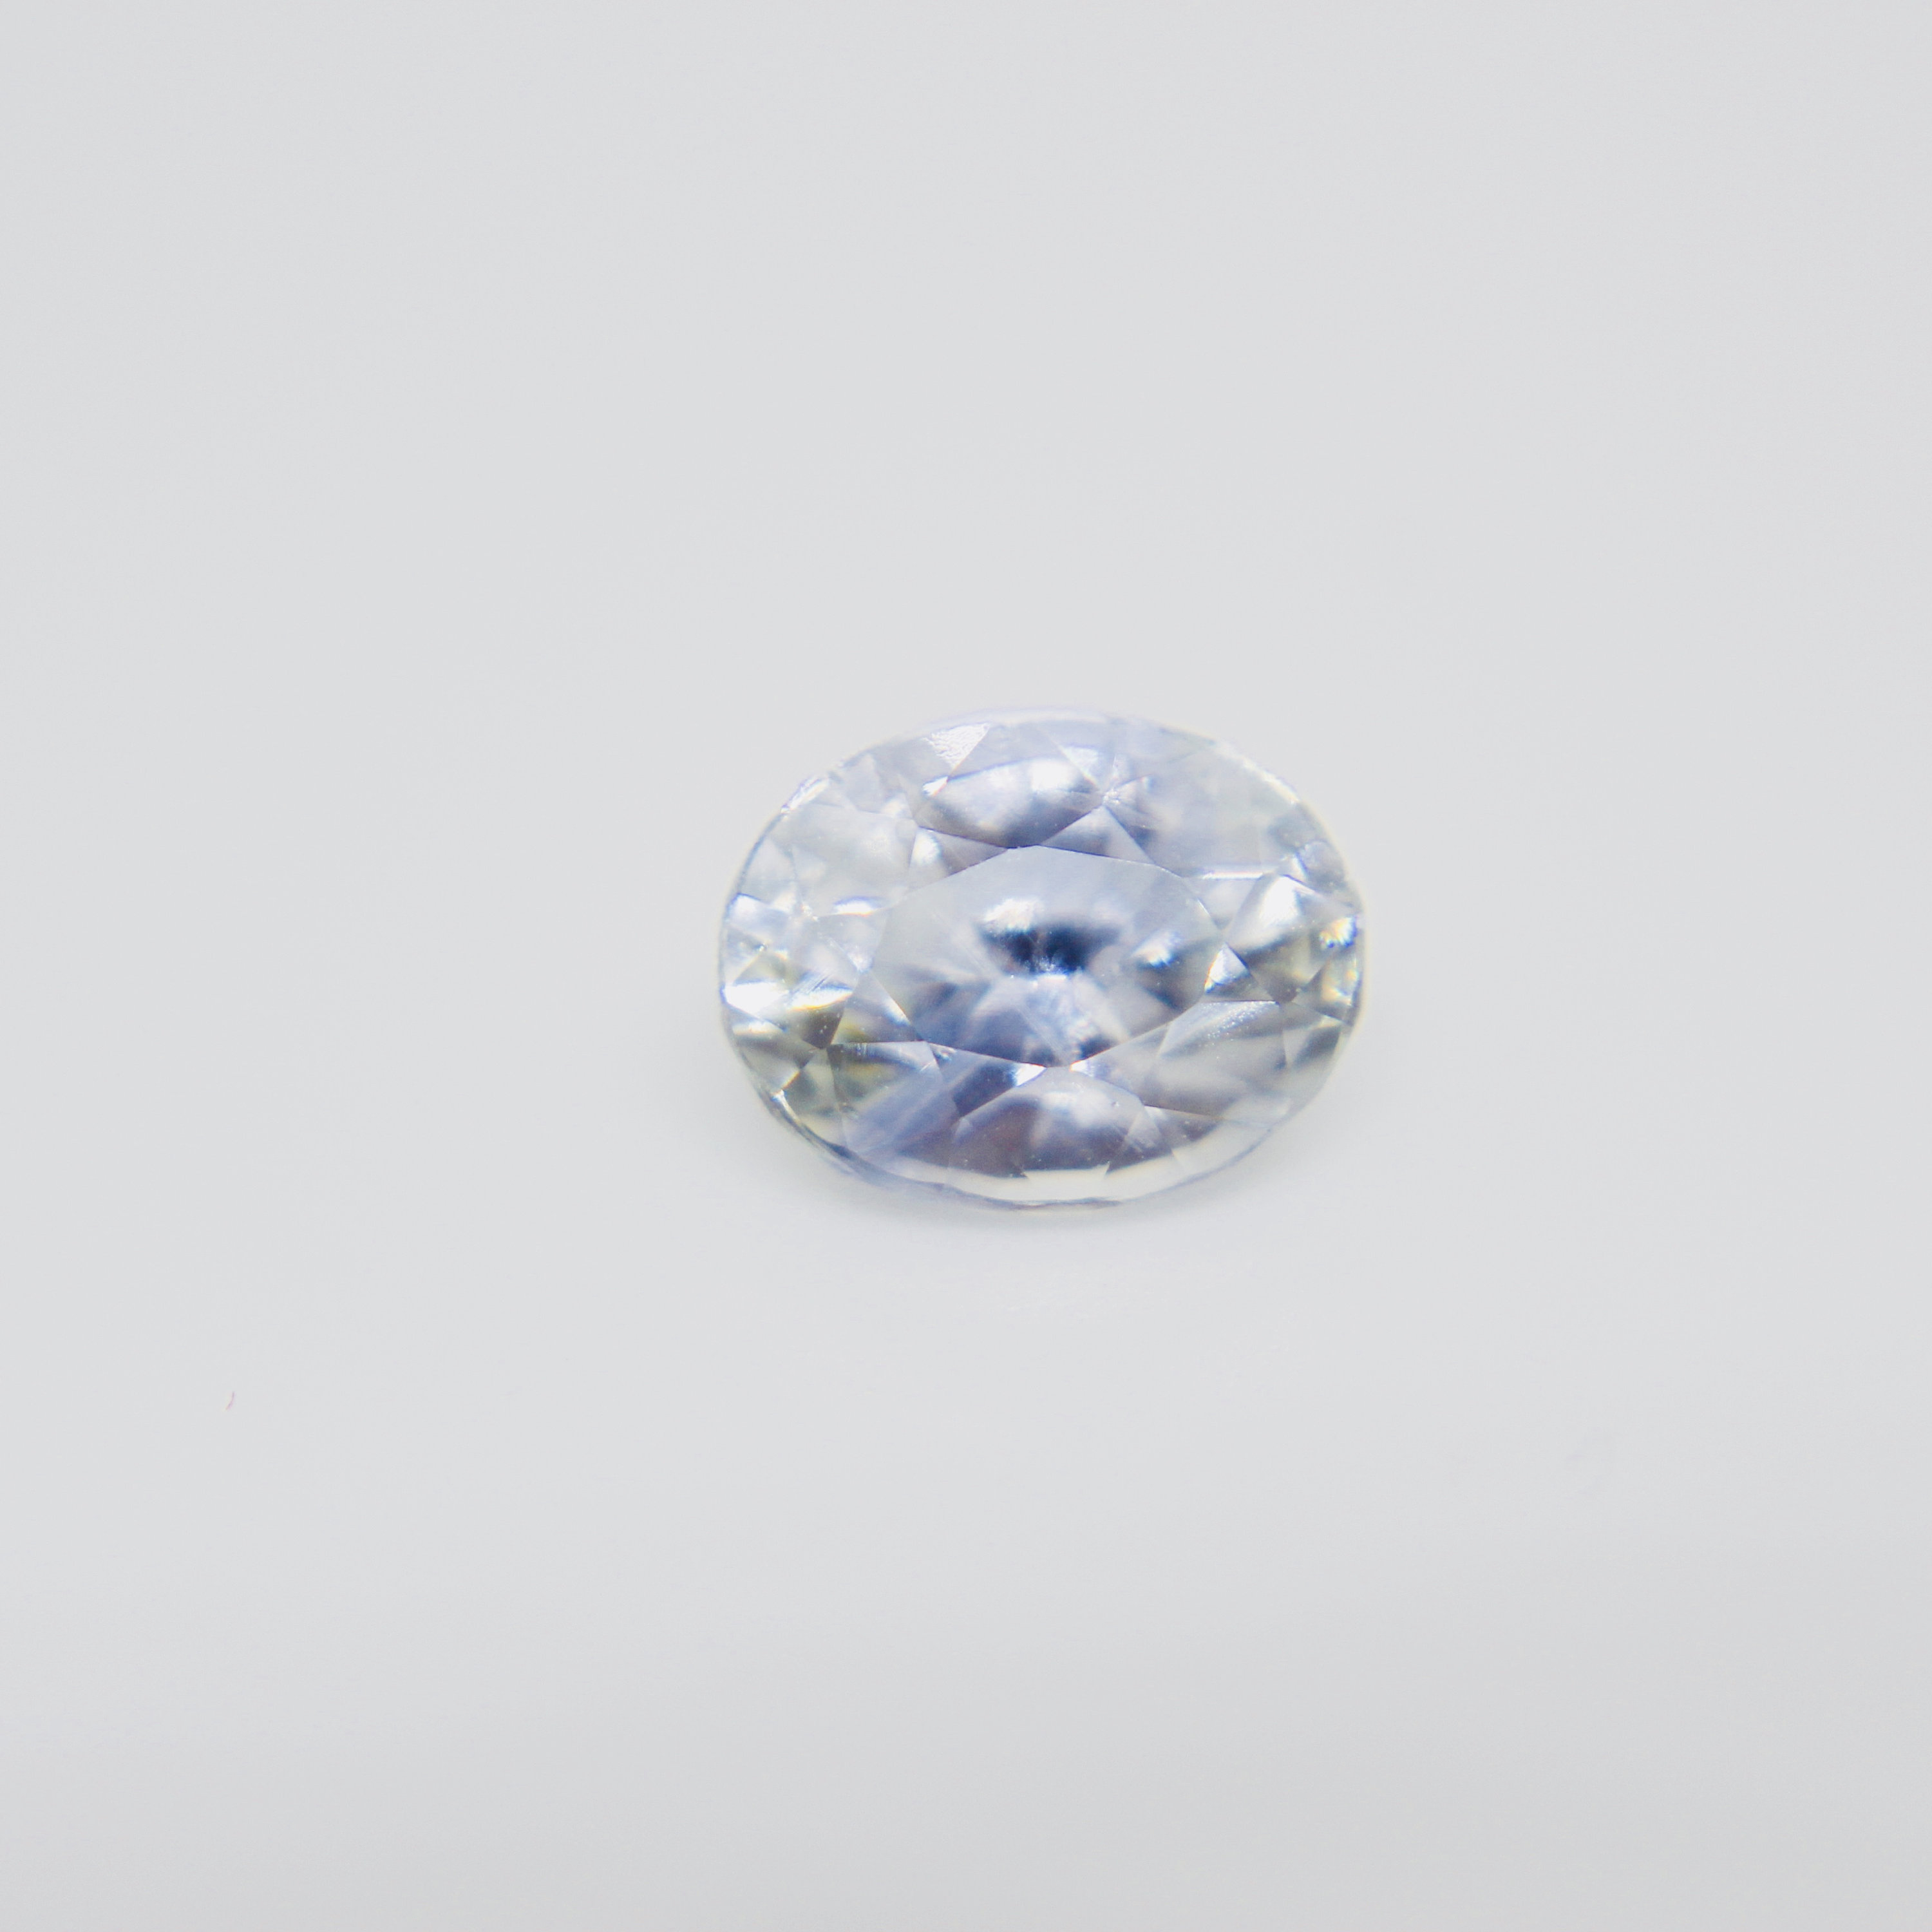 cut blue cushion pink unheated pale loose pin ceylon natural sapphire